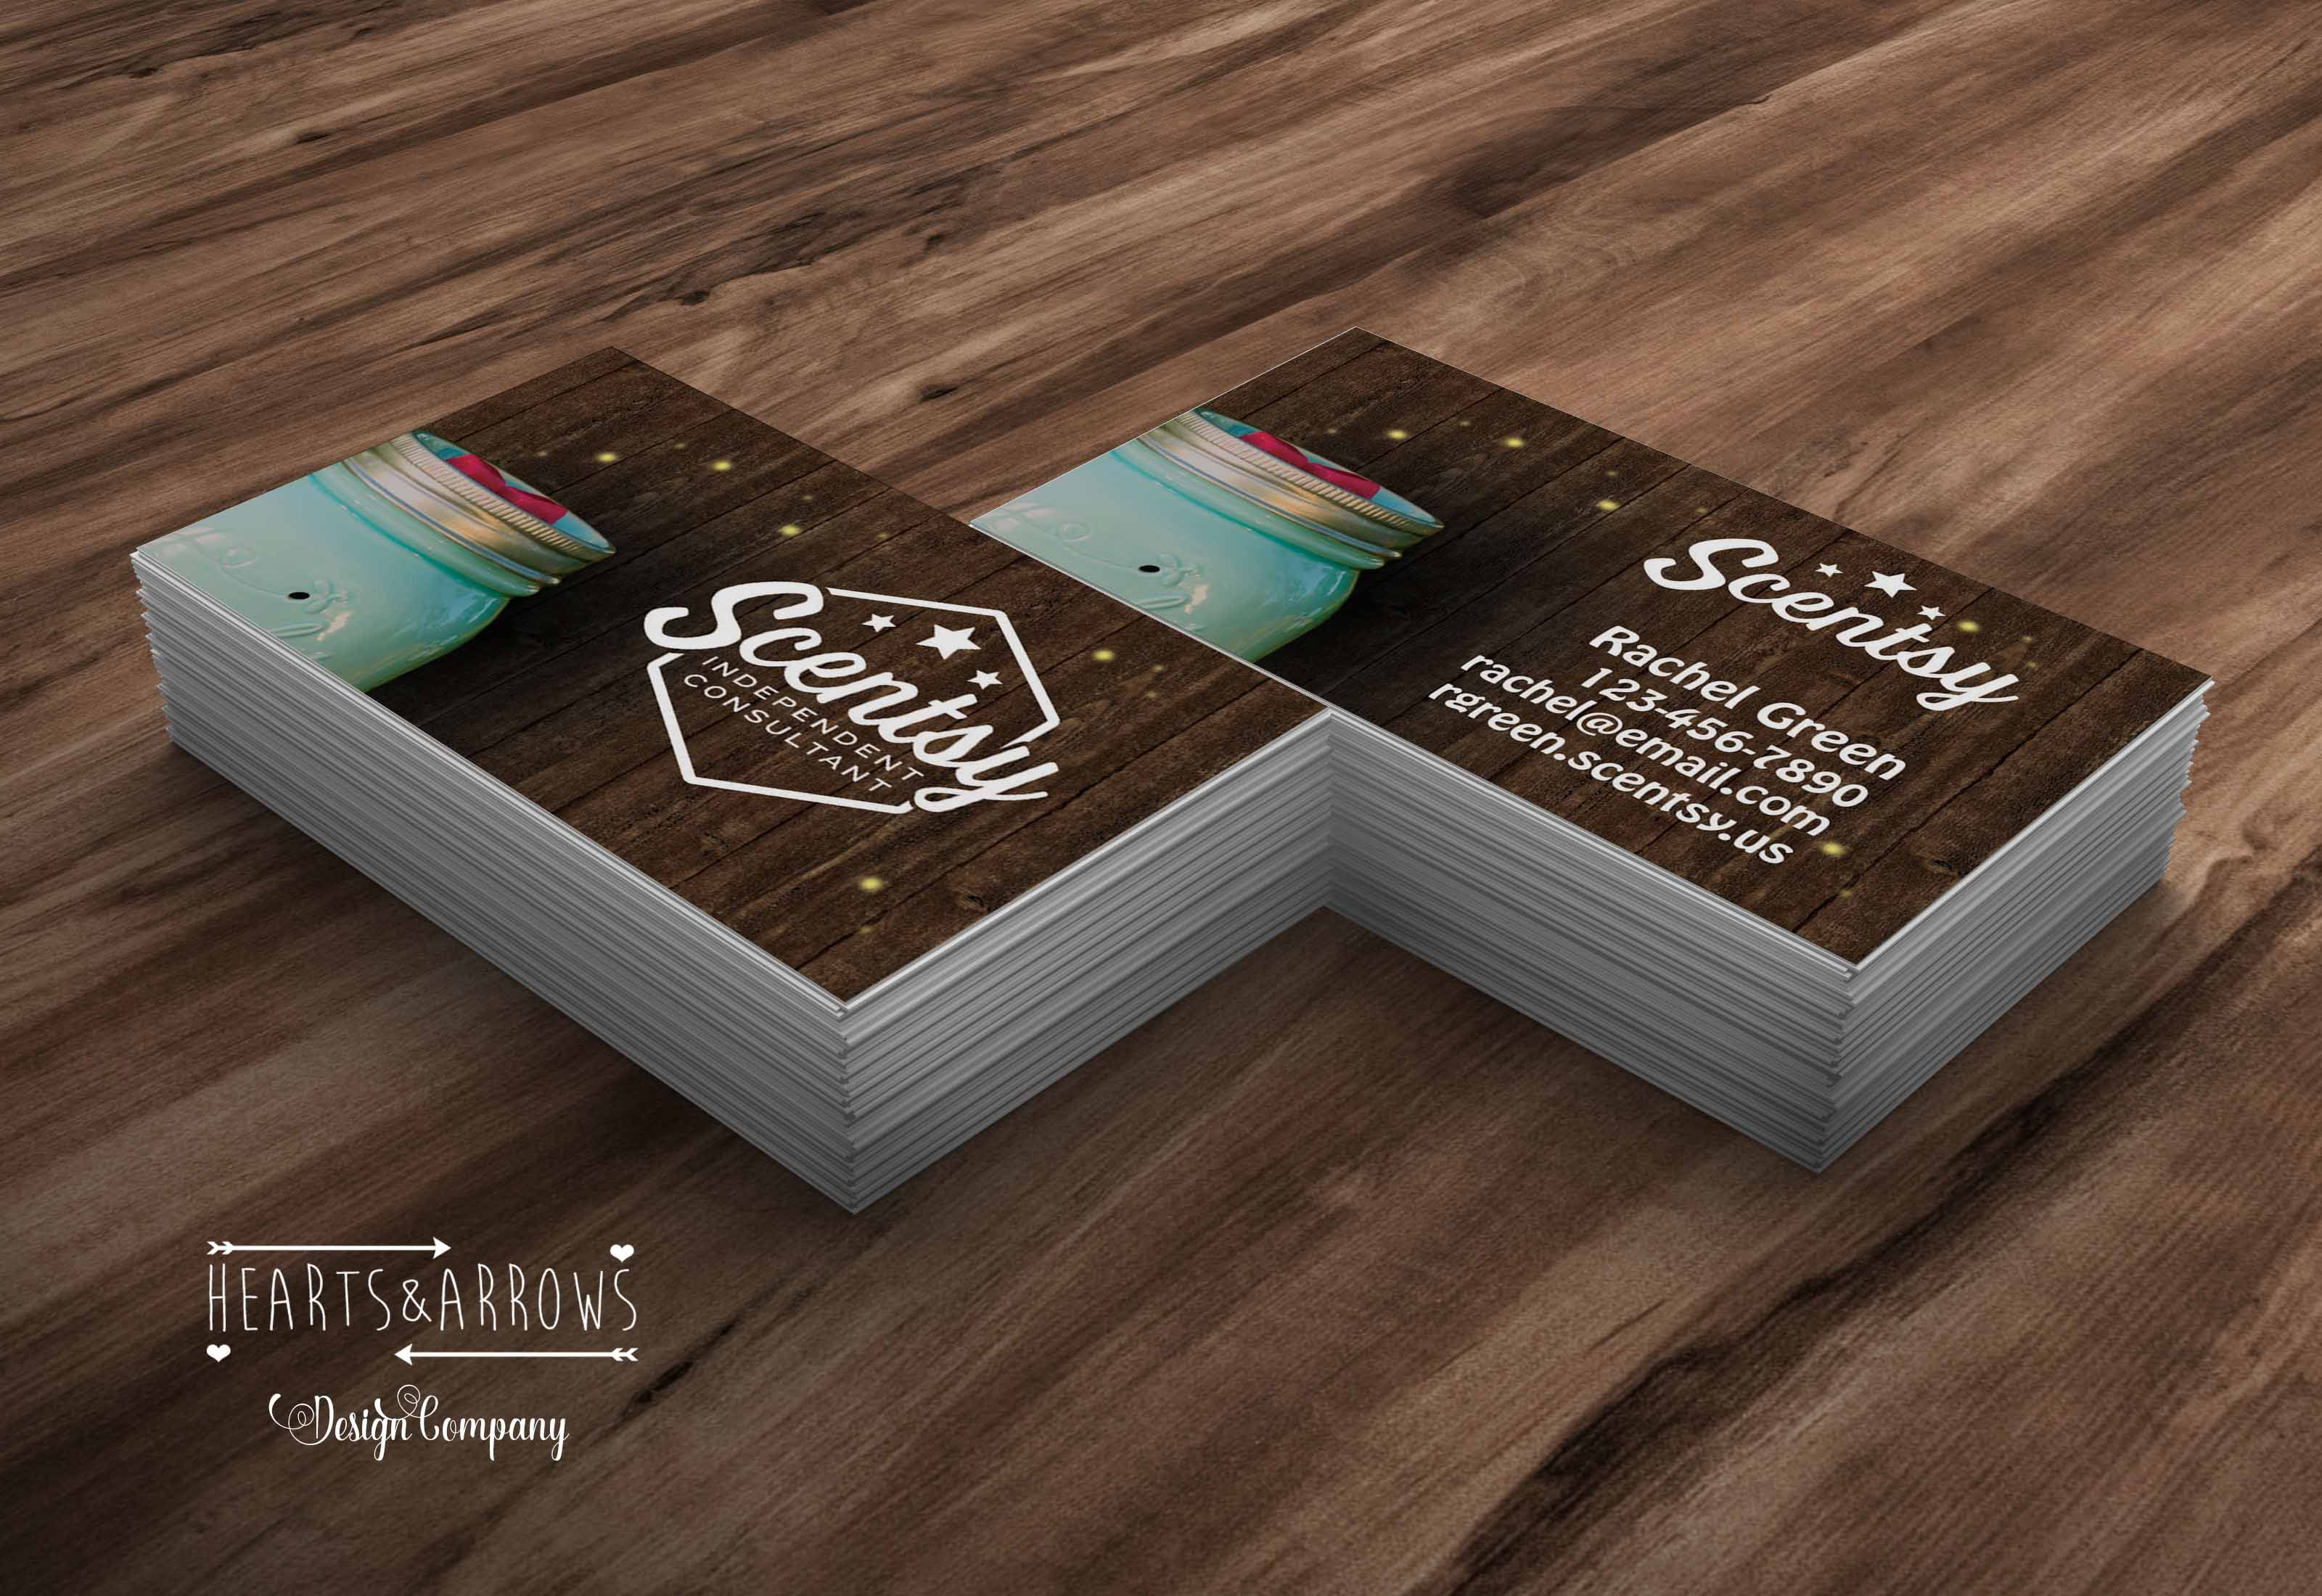 Chasing Fireflies Scentsy Business Cards by Hearts&Arrows Design Co ...